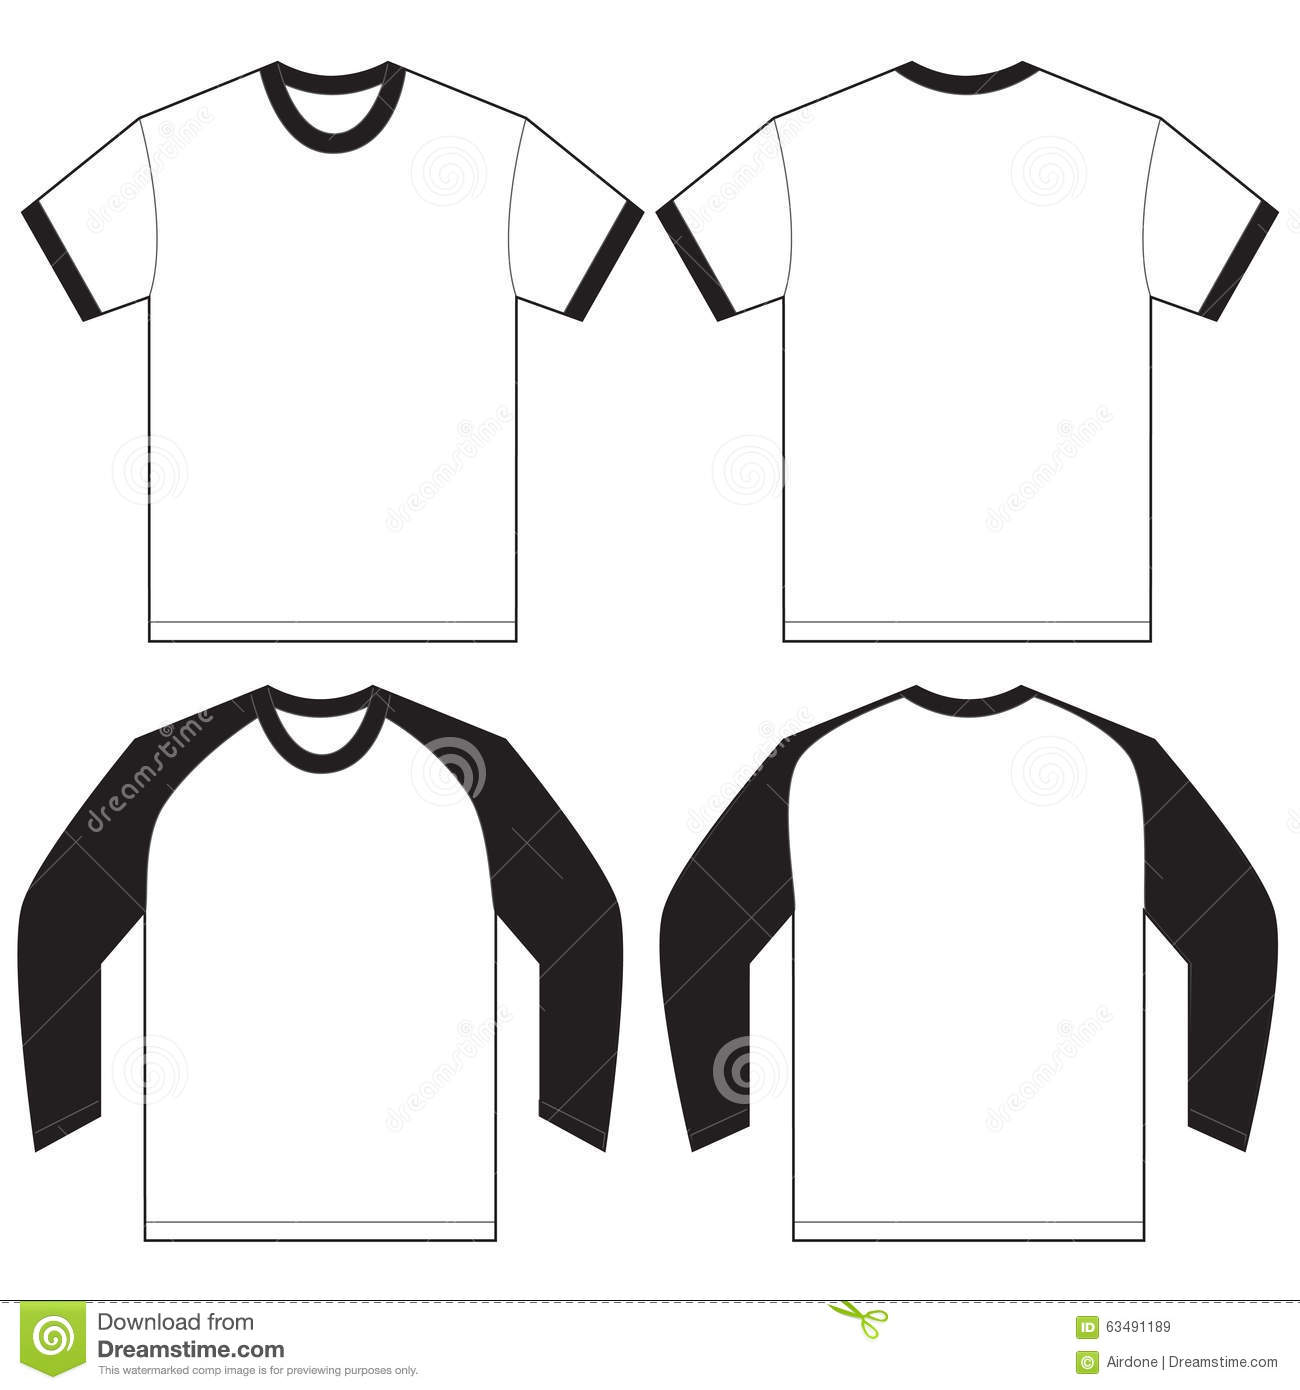 White t shirt front and back template - Black White Ringer T Shirt Design Template